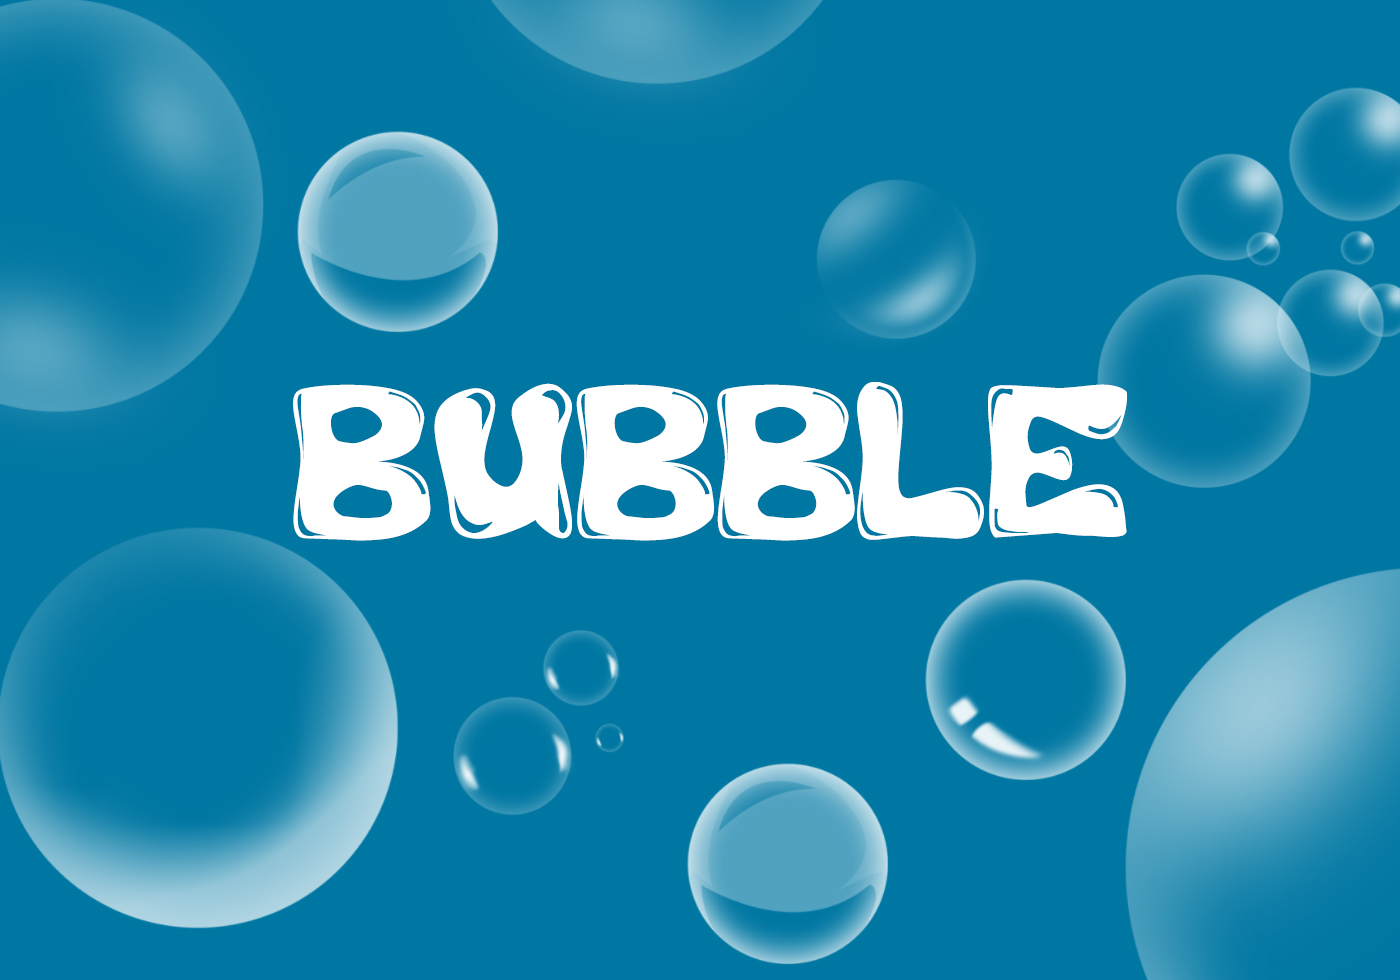 Make A Bubble Room From Willi Wonka